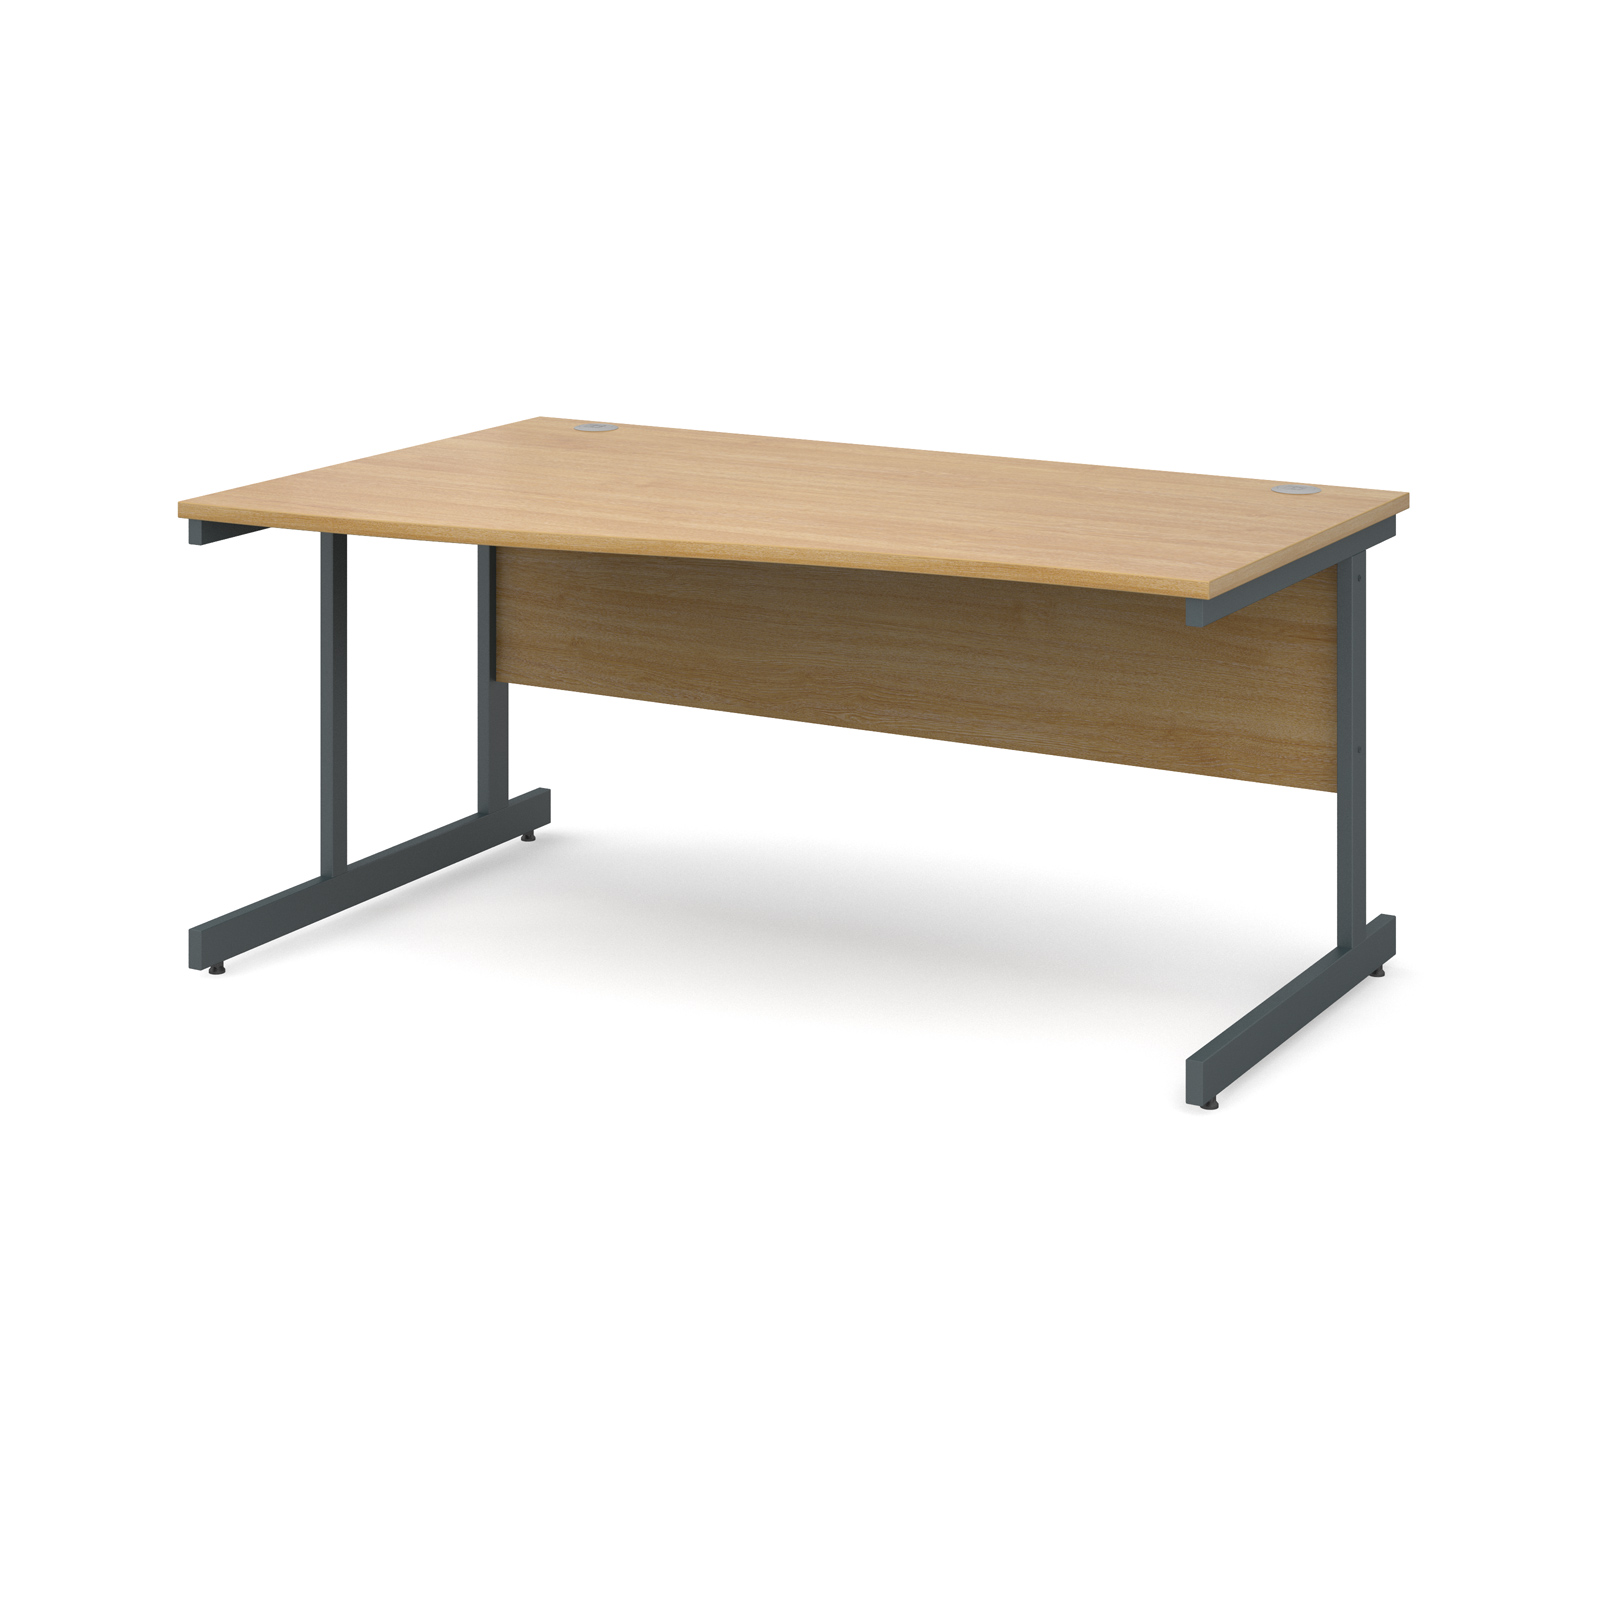 Contract 25 left hand wave desk 1600mm - graphite cantilever frame, oak top